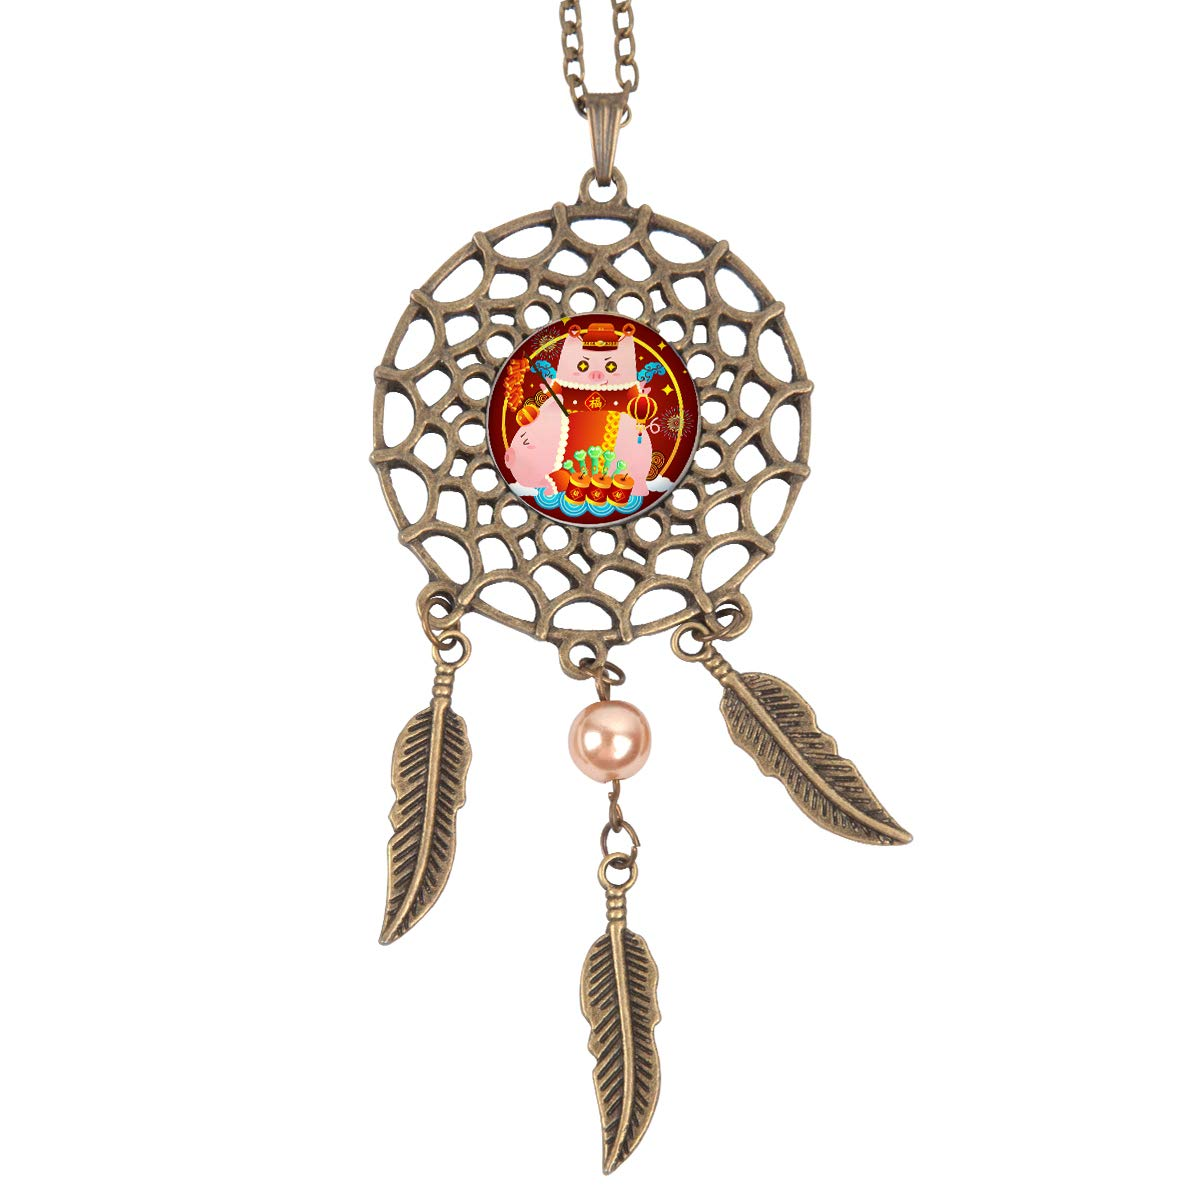 Queen Area Dream Catcher Necklace Red Pig Pendant Dangling Feather Tassel Bead Charm Chain Jewelry for Women